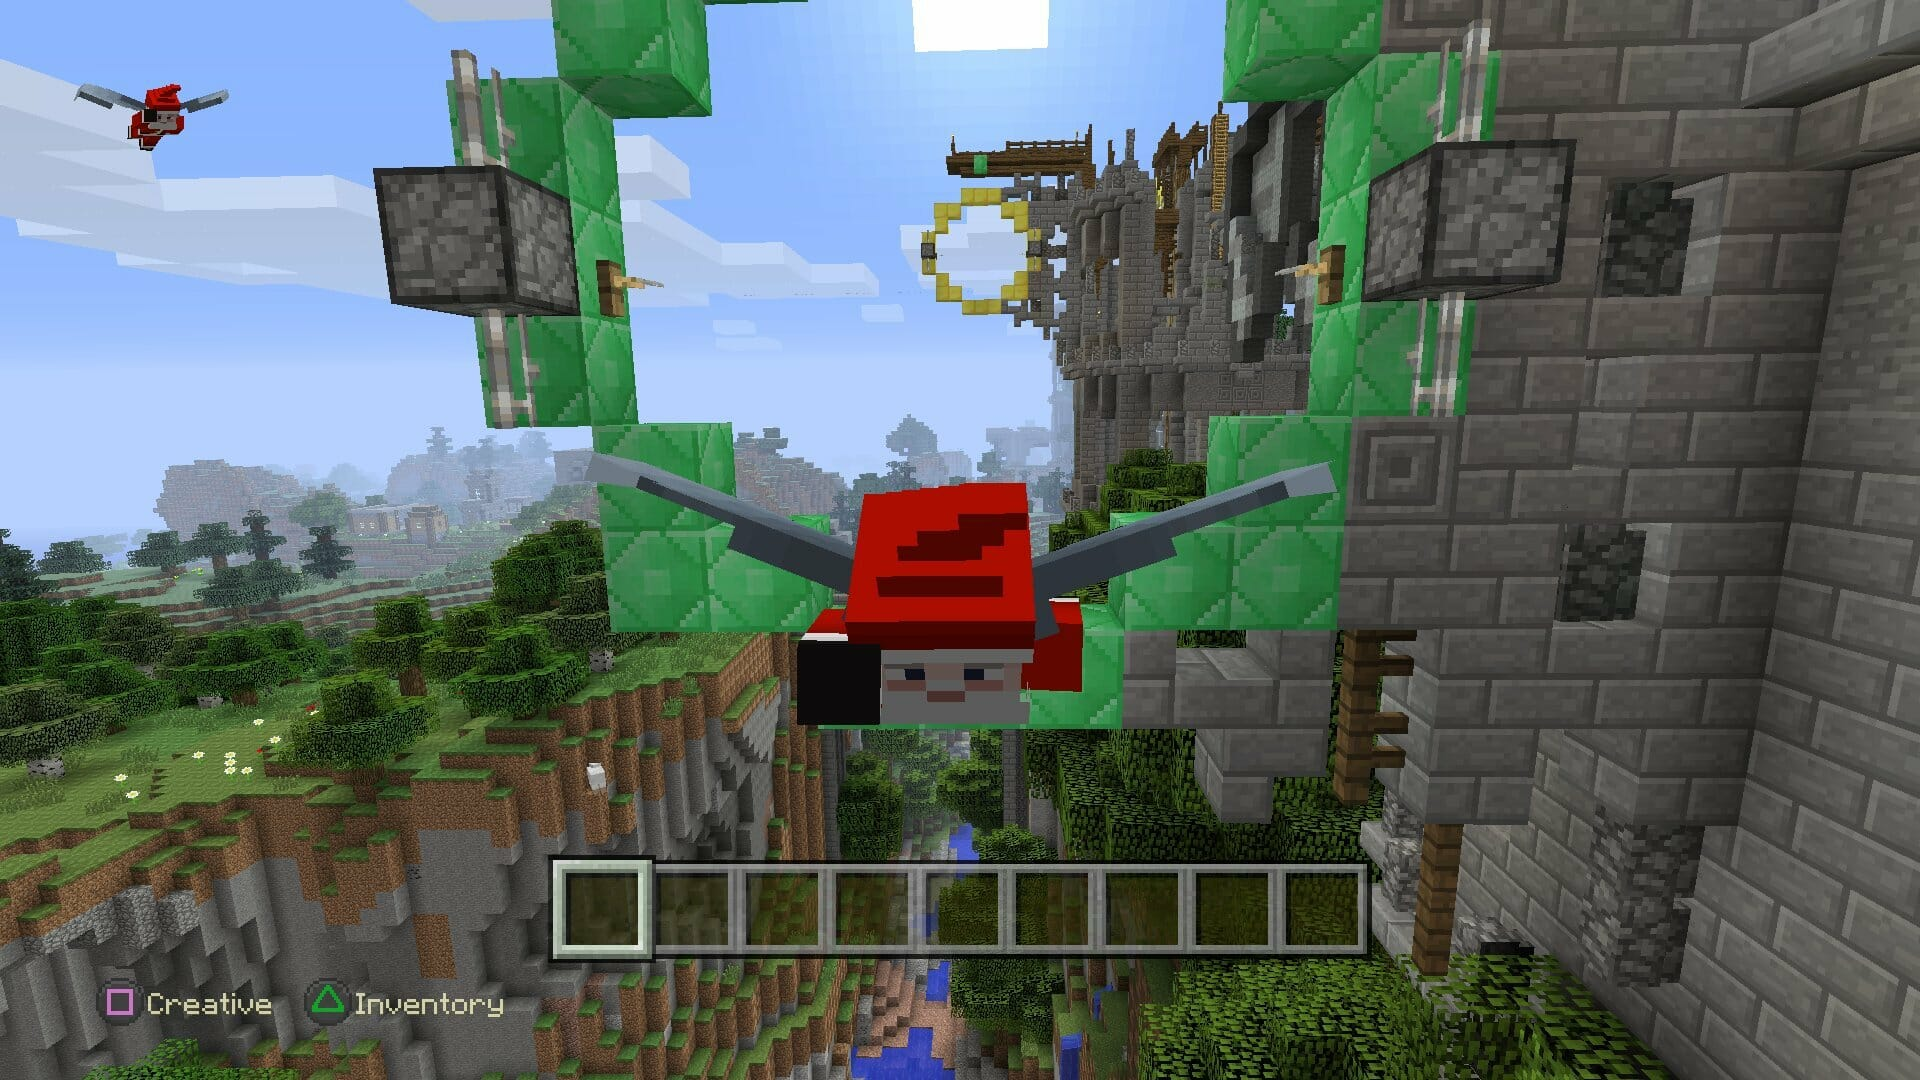 Minecraft Update for PS4 and Xbox One with New Terrain and Elytra